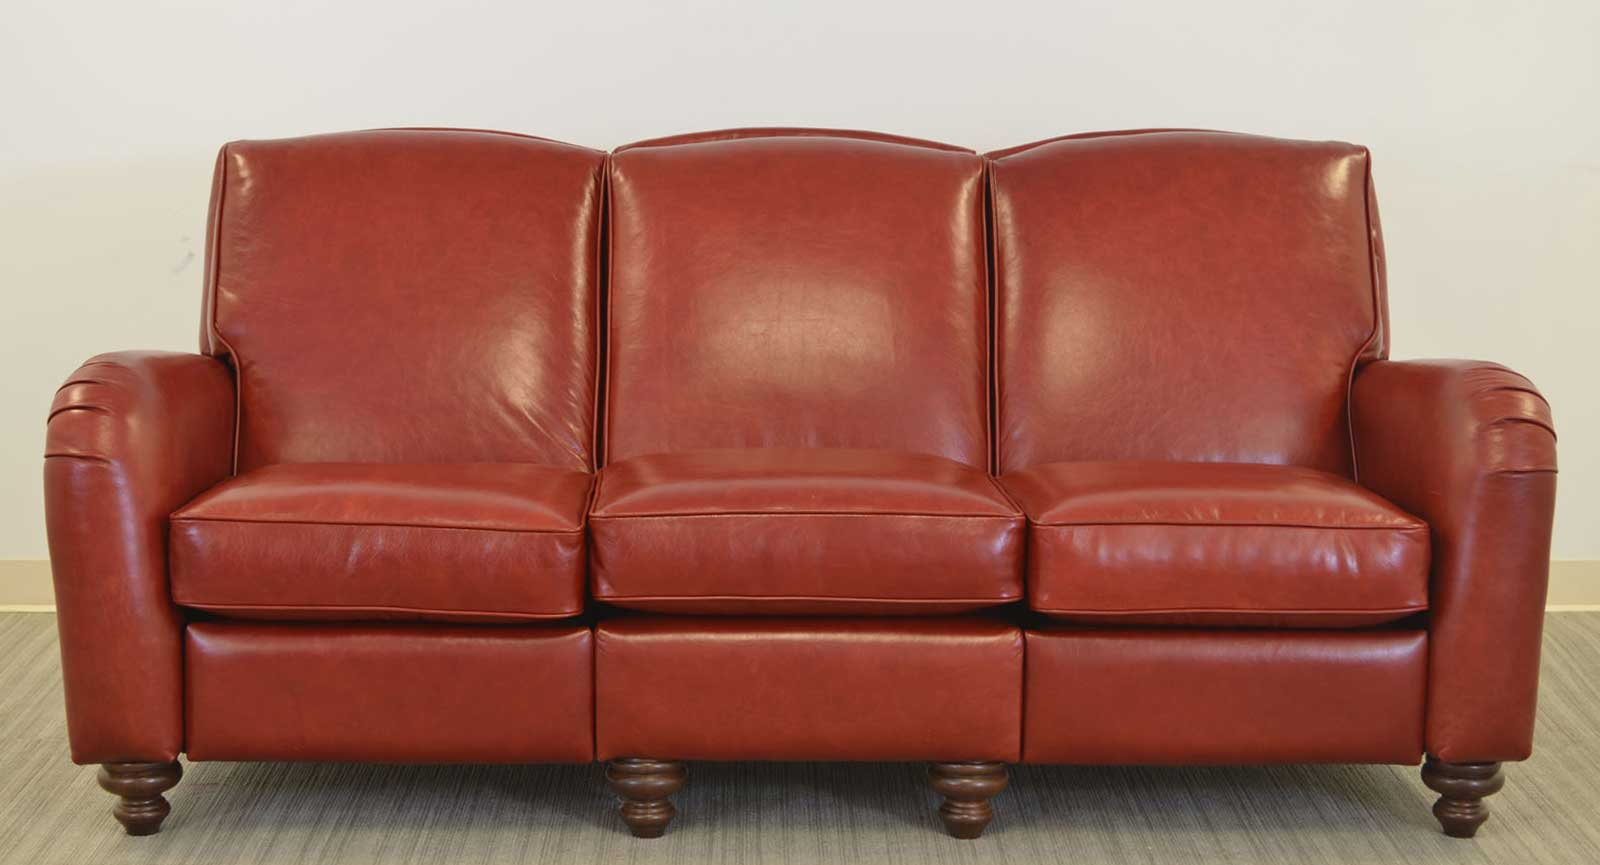 Sofa Two Incliners